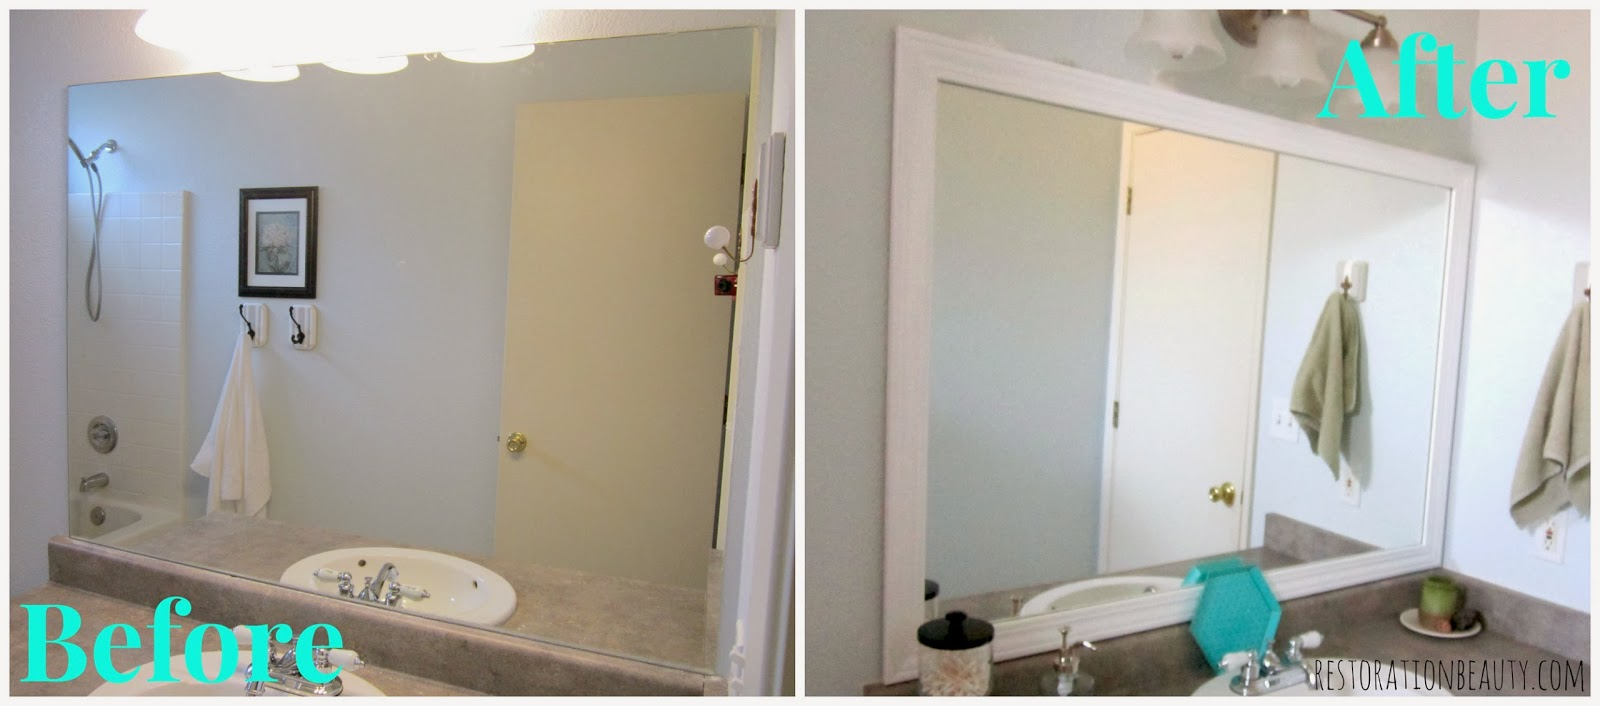 Restoration Beauty 11 Framed Builder Grade Bathroom Mirror